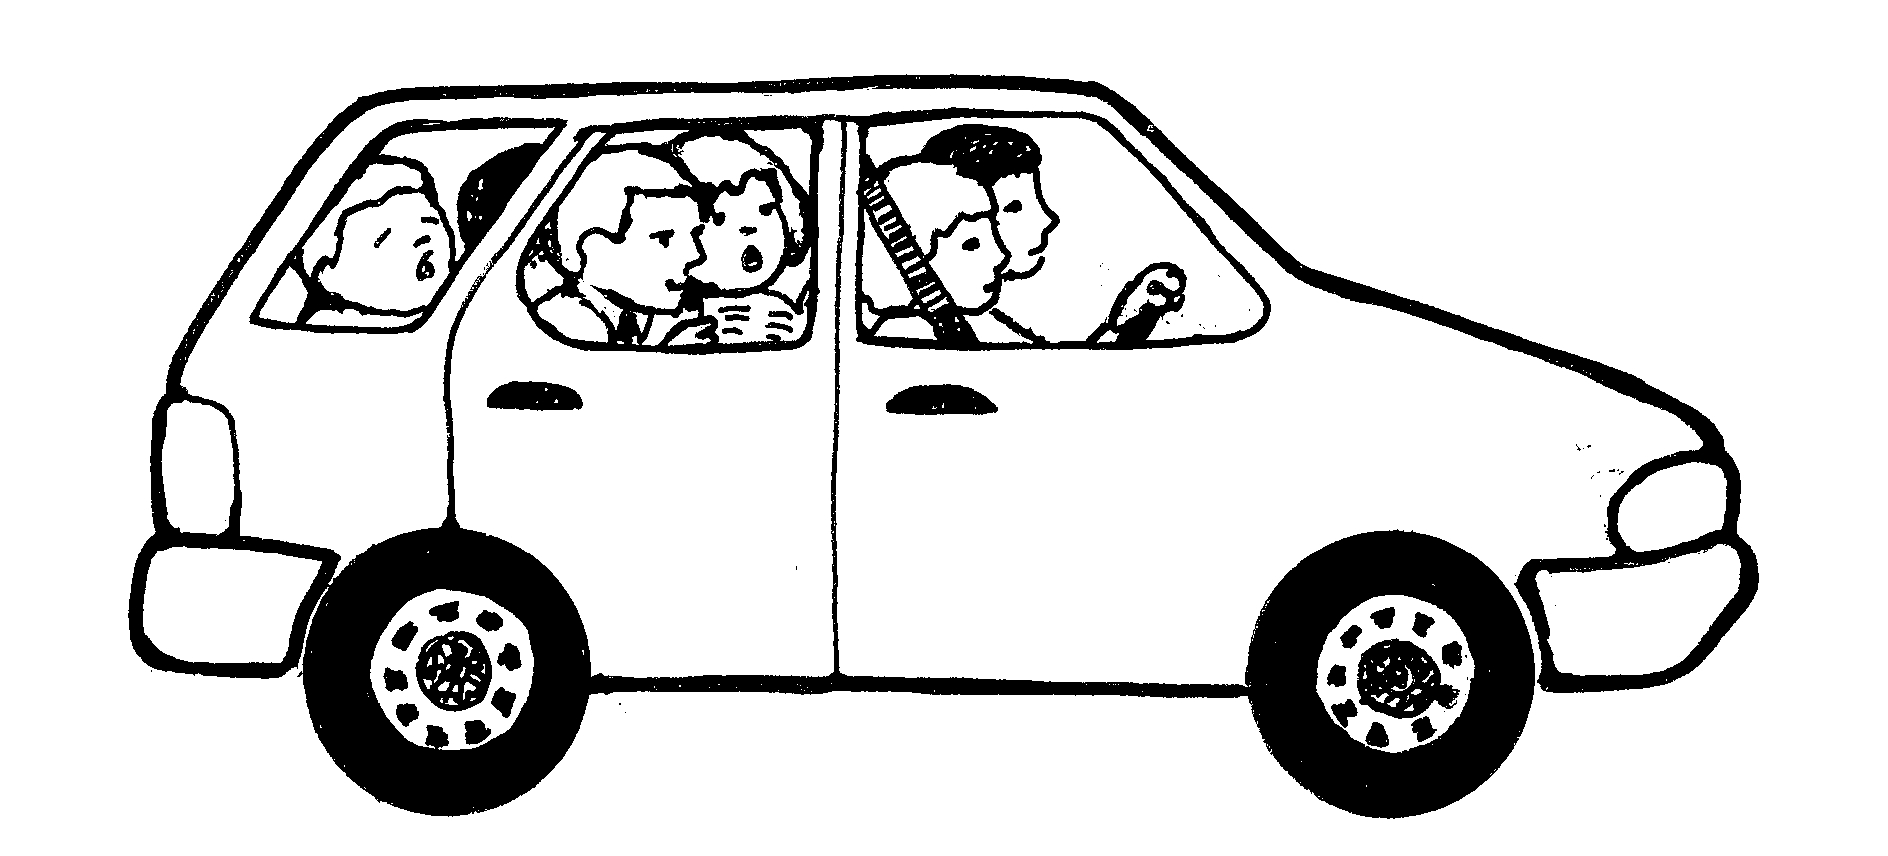 3 people in car clipart